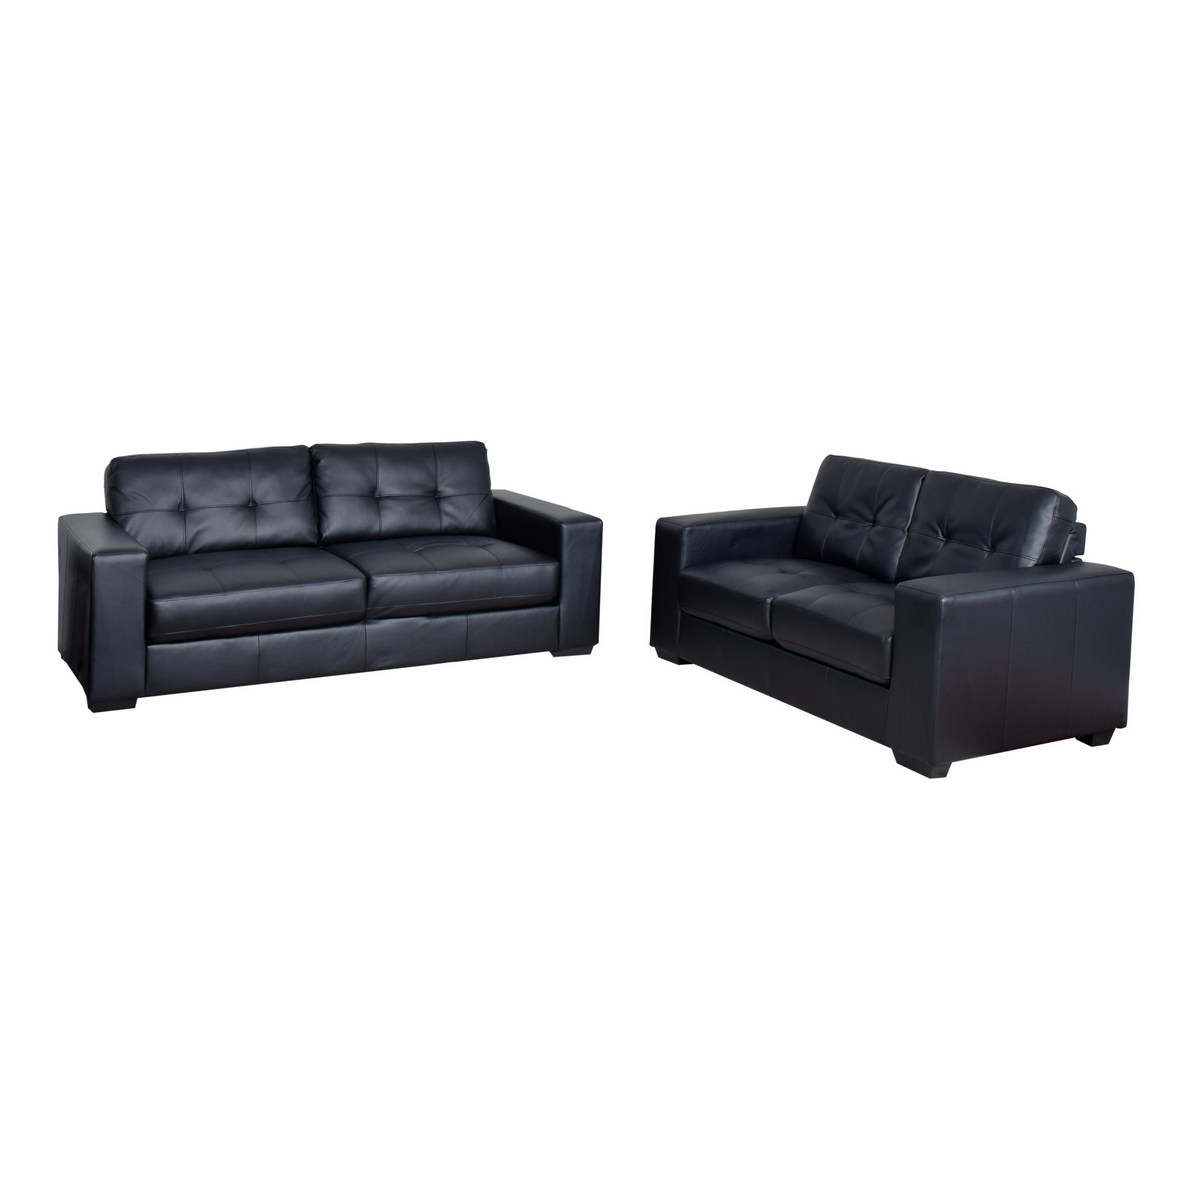 Corliving Tufted Sofa Leather Set